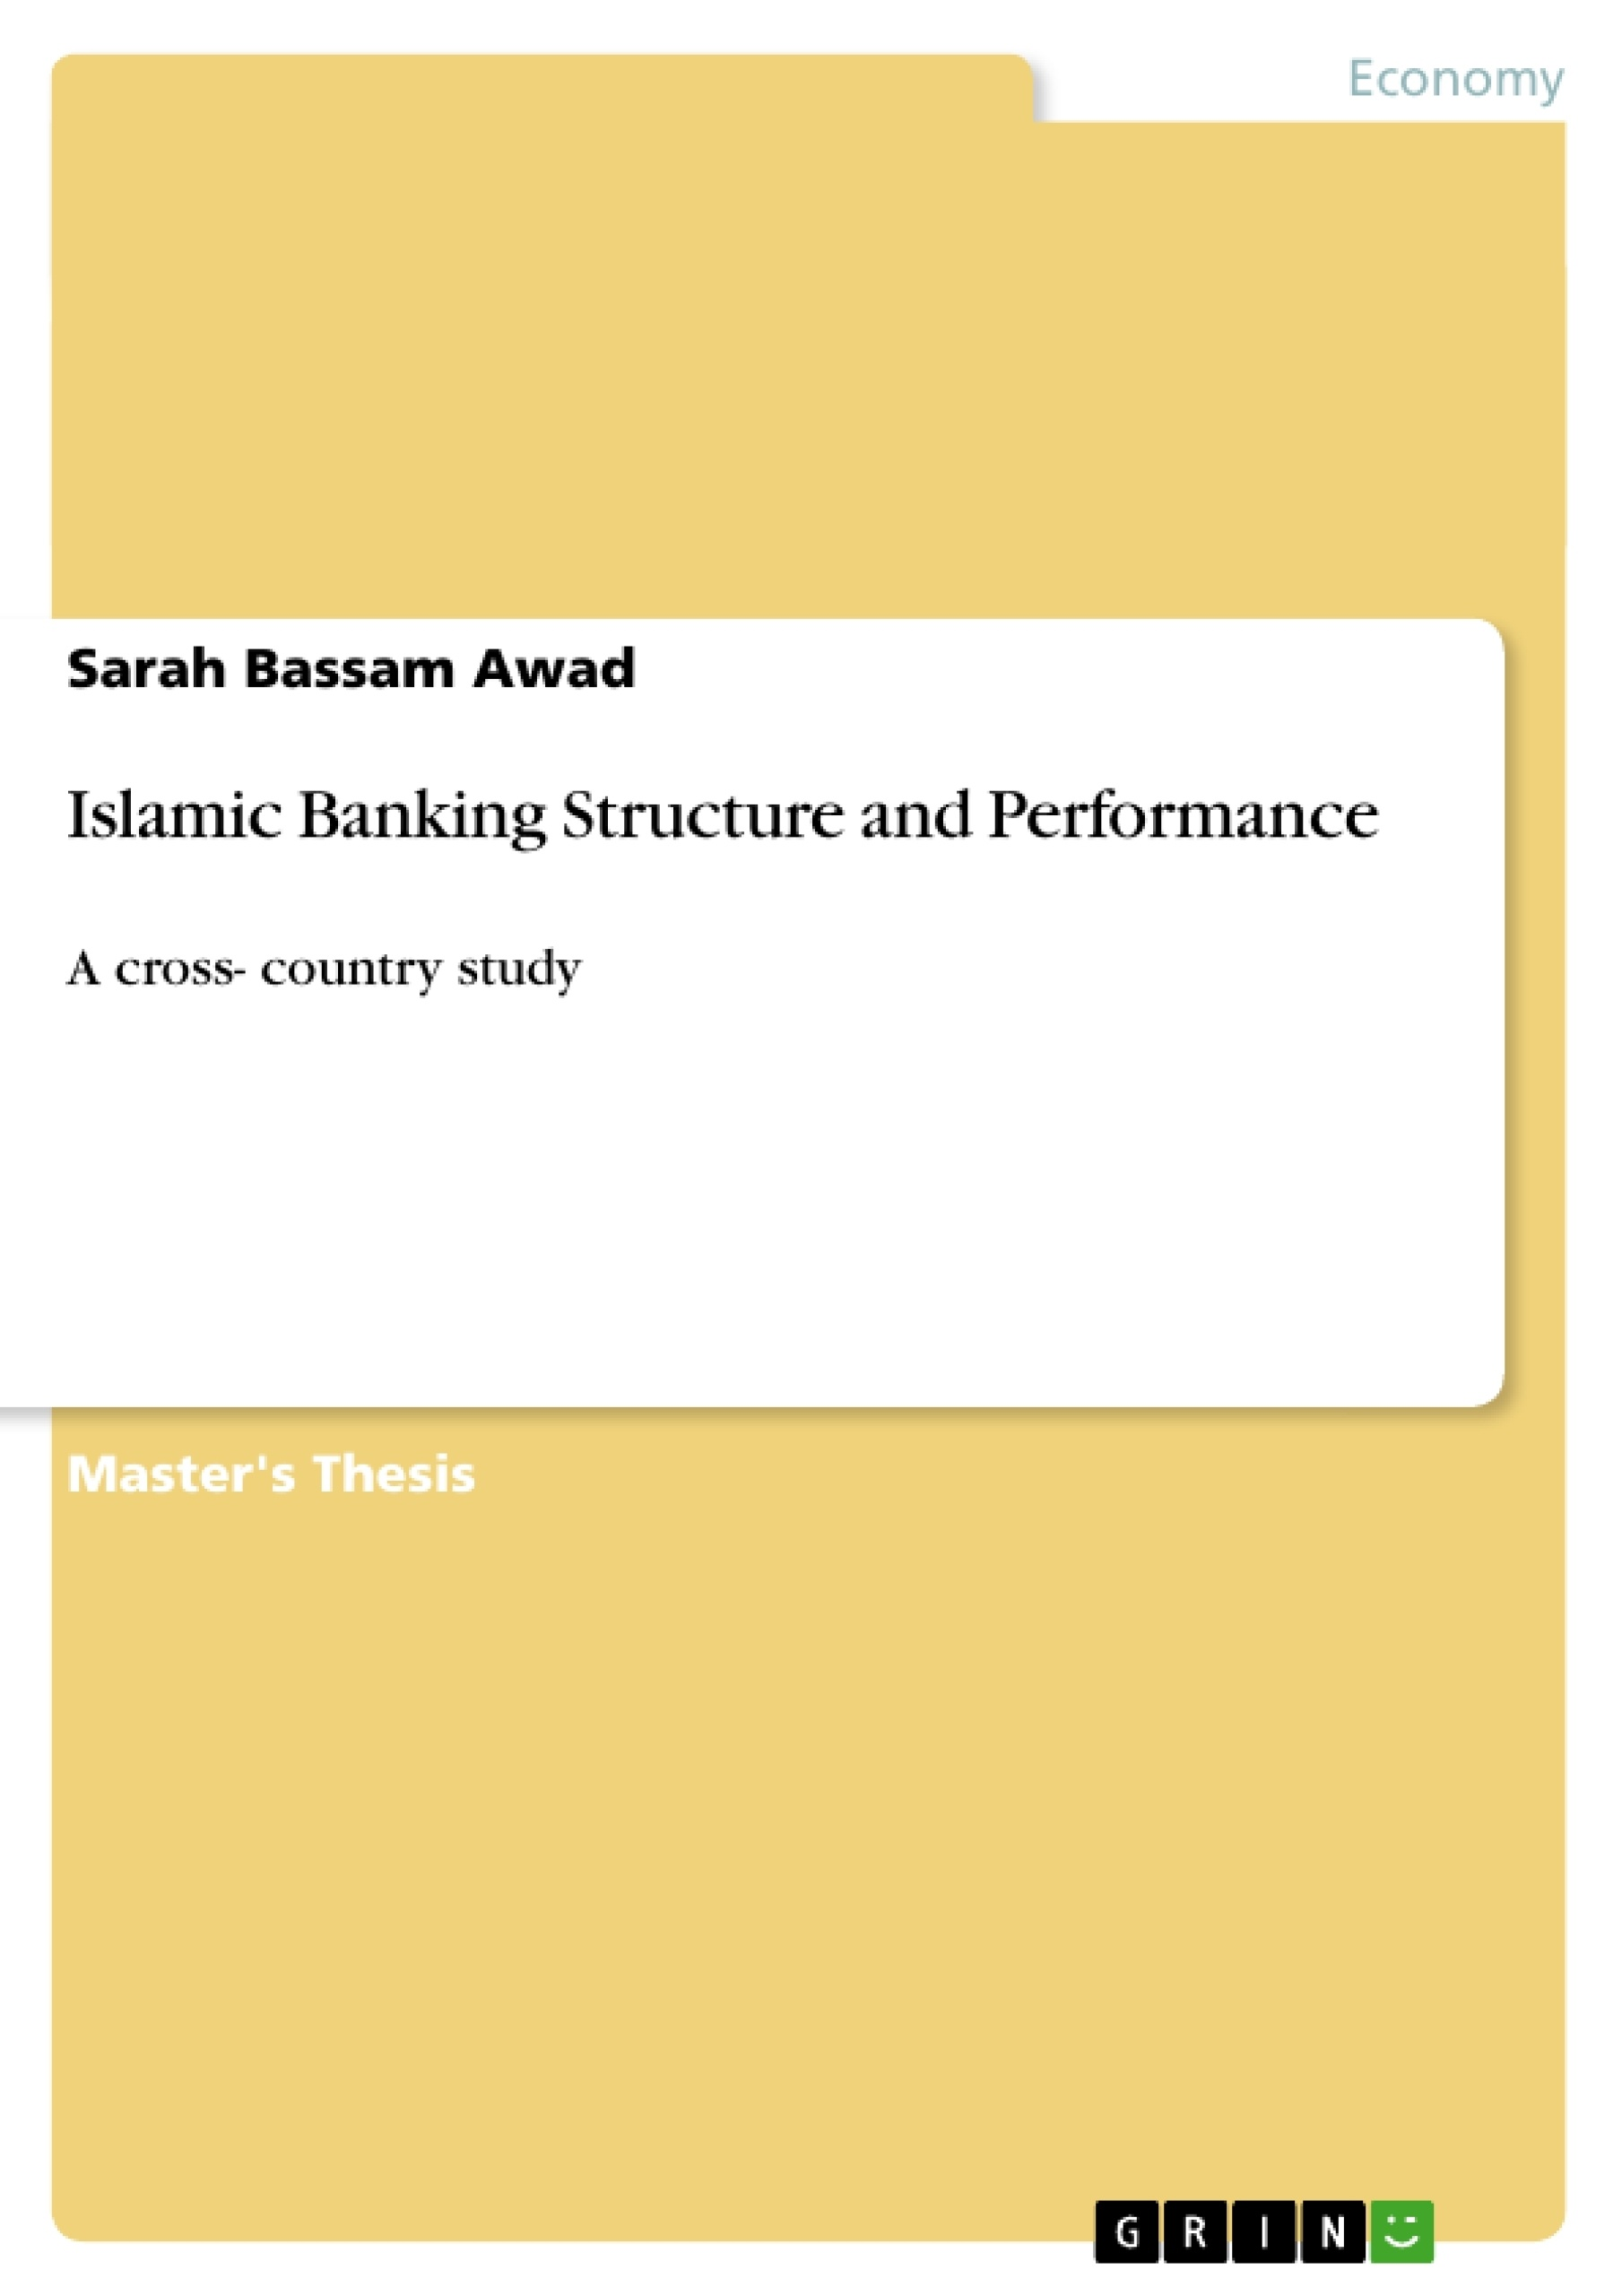 islamic banking structure and performance publish your master s islamic banking structure and performance publish your master s thesis bachelor s thesis essay or term paper